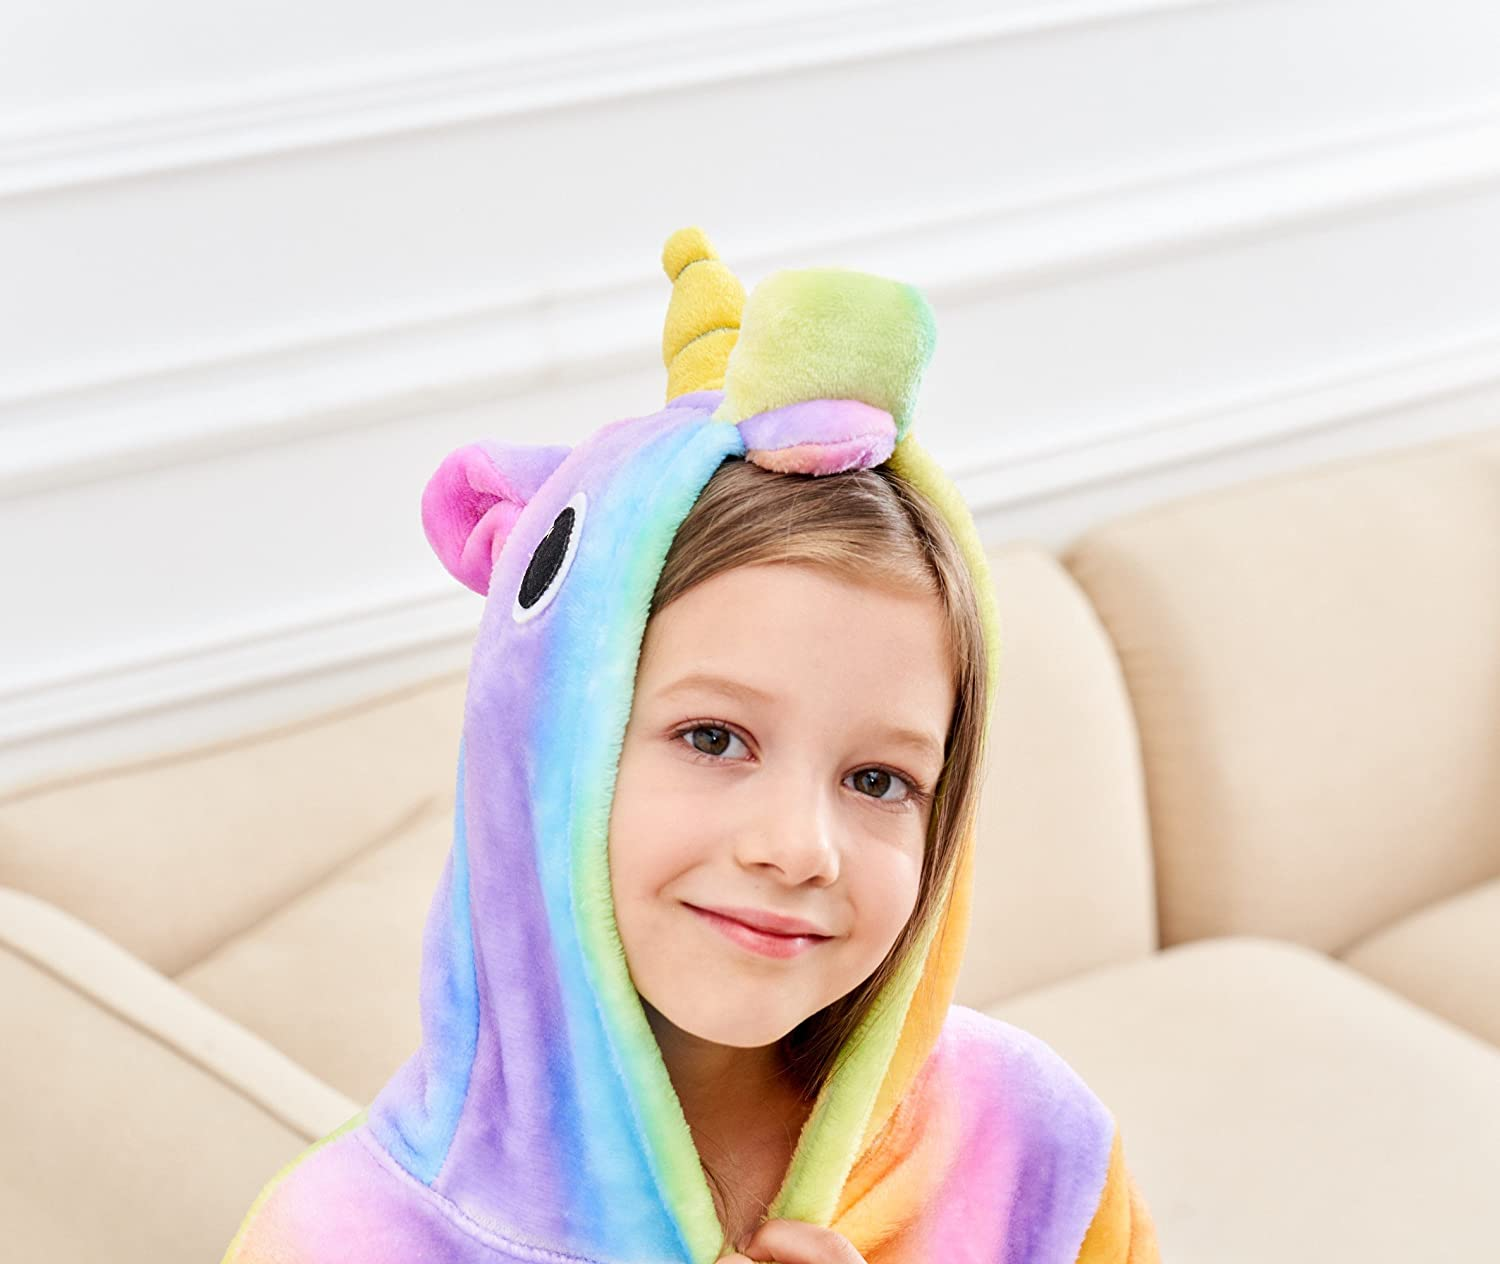 Cesriter Unicorn Hooded Bathrobe Sleepwear Matching Doll /& Girls Gifts